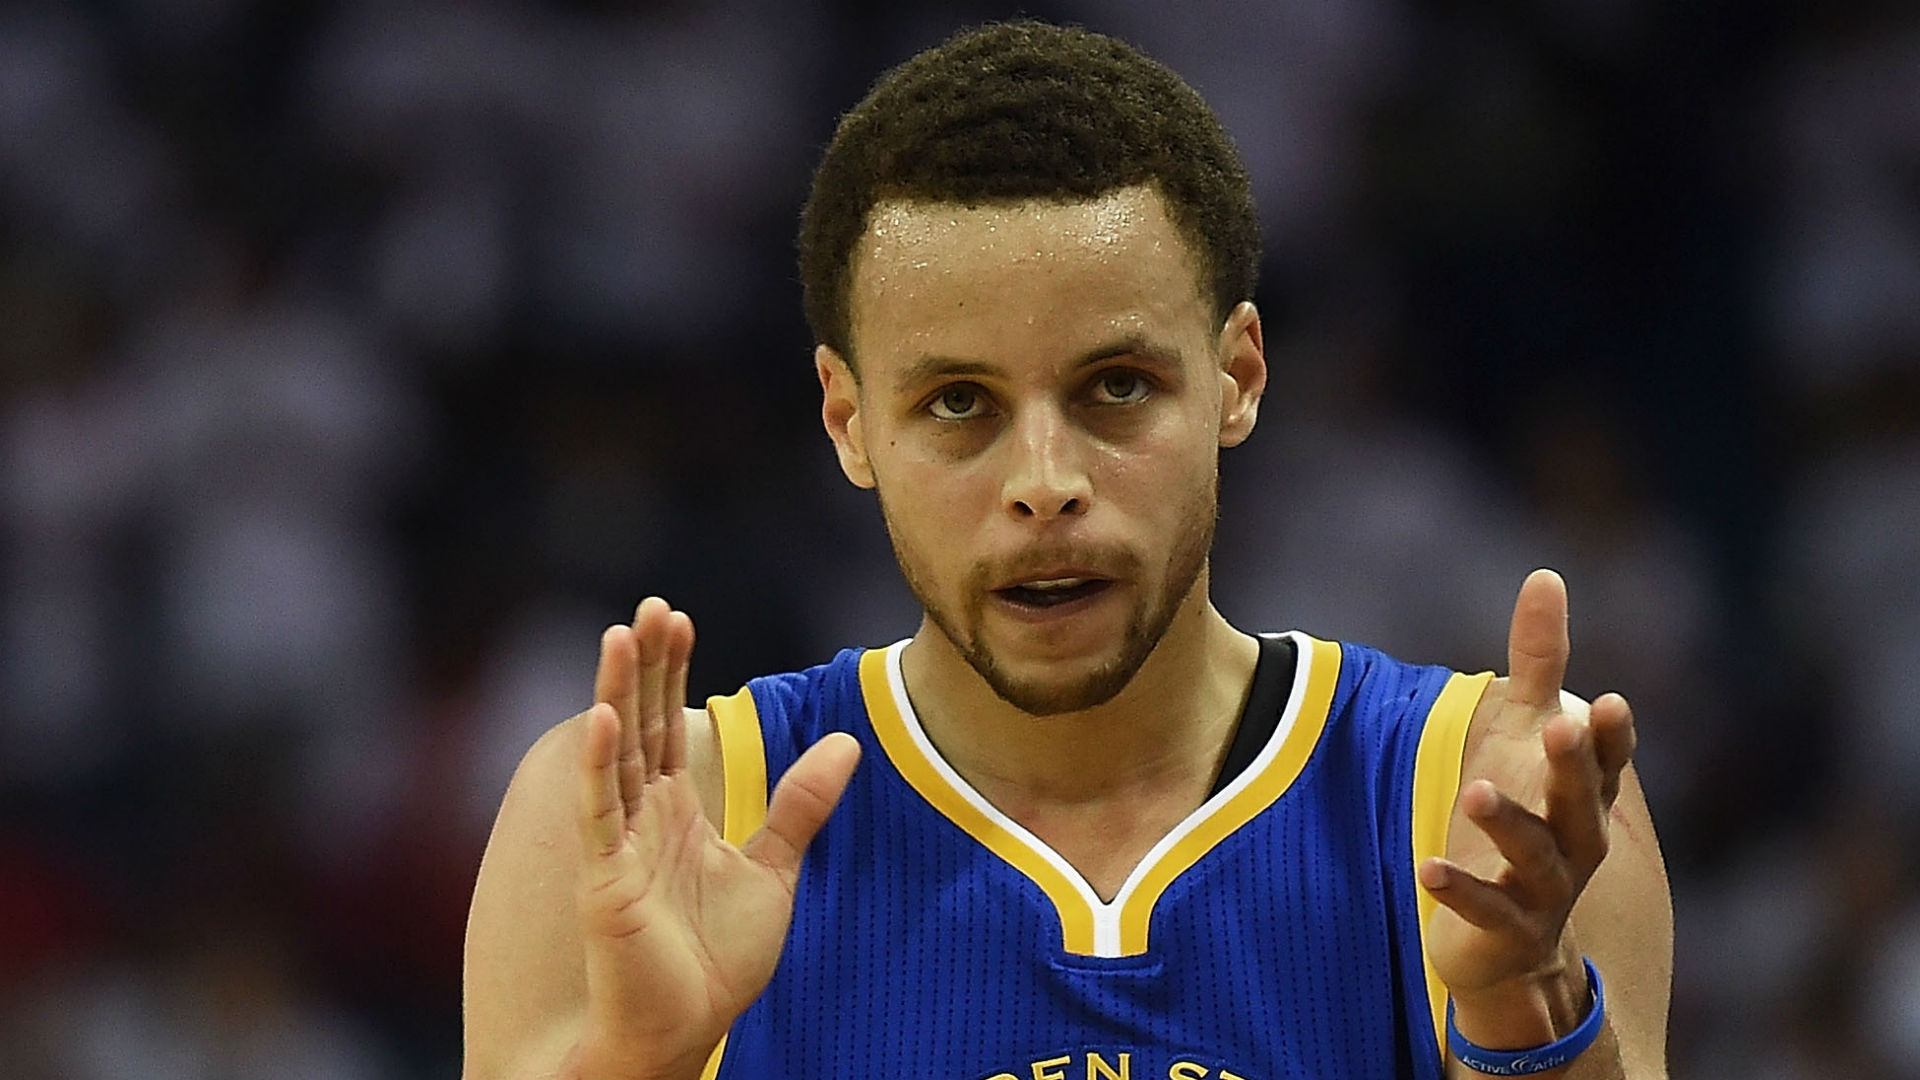 Steph Curry rewrote recruiting's rules en route to NBA MVP